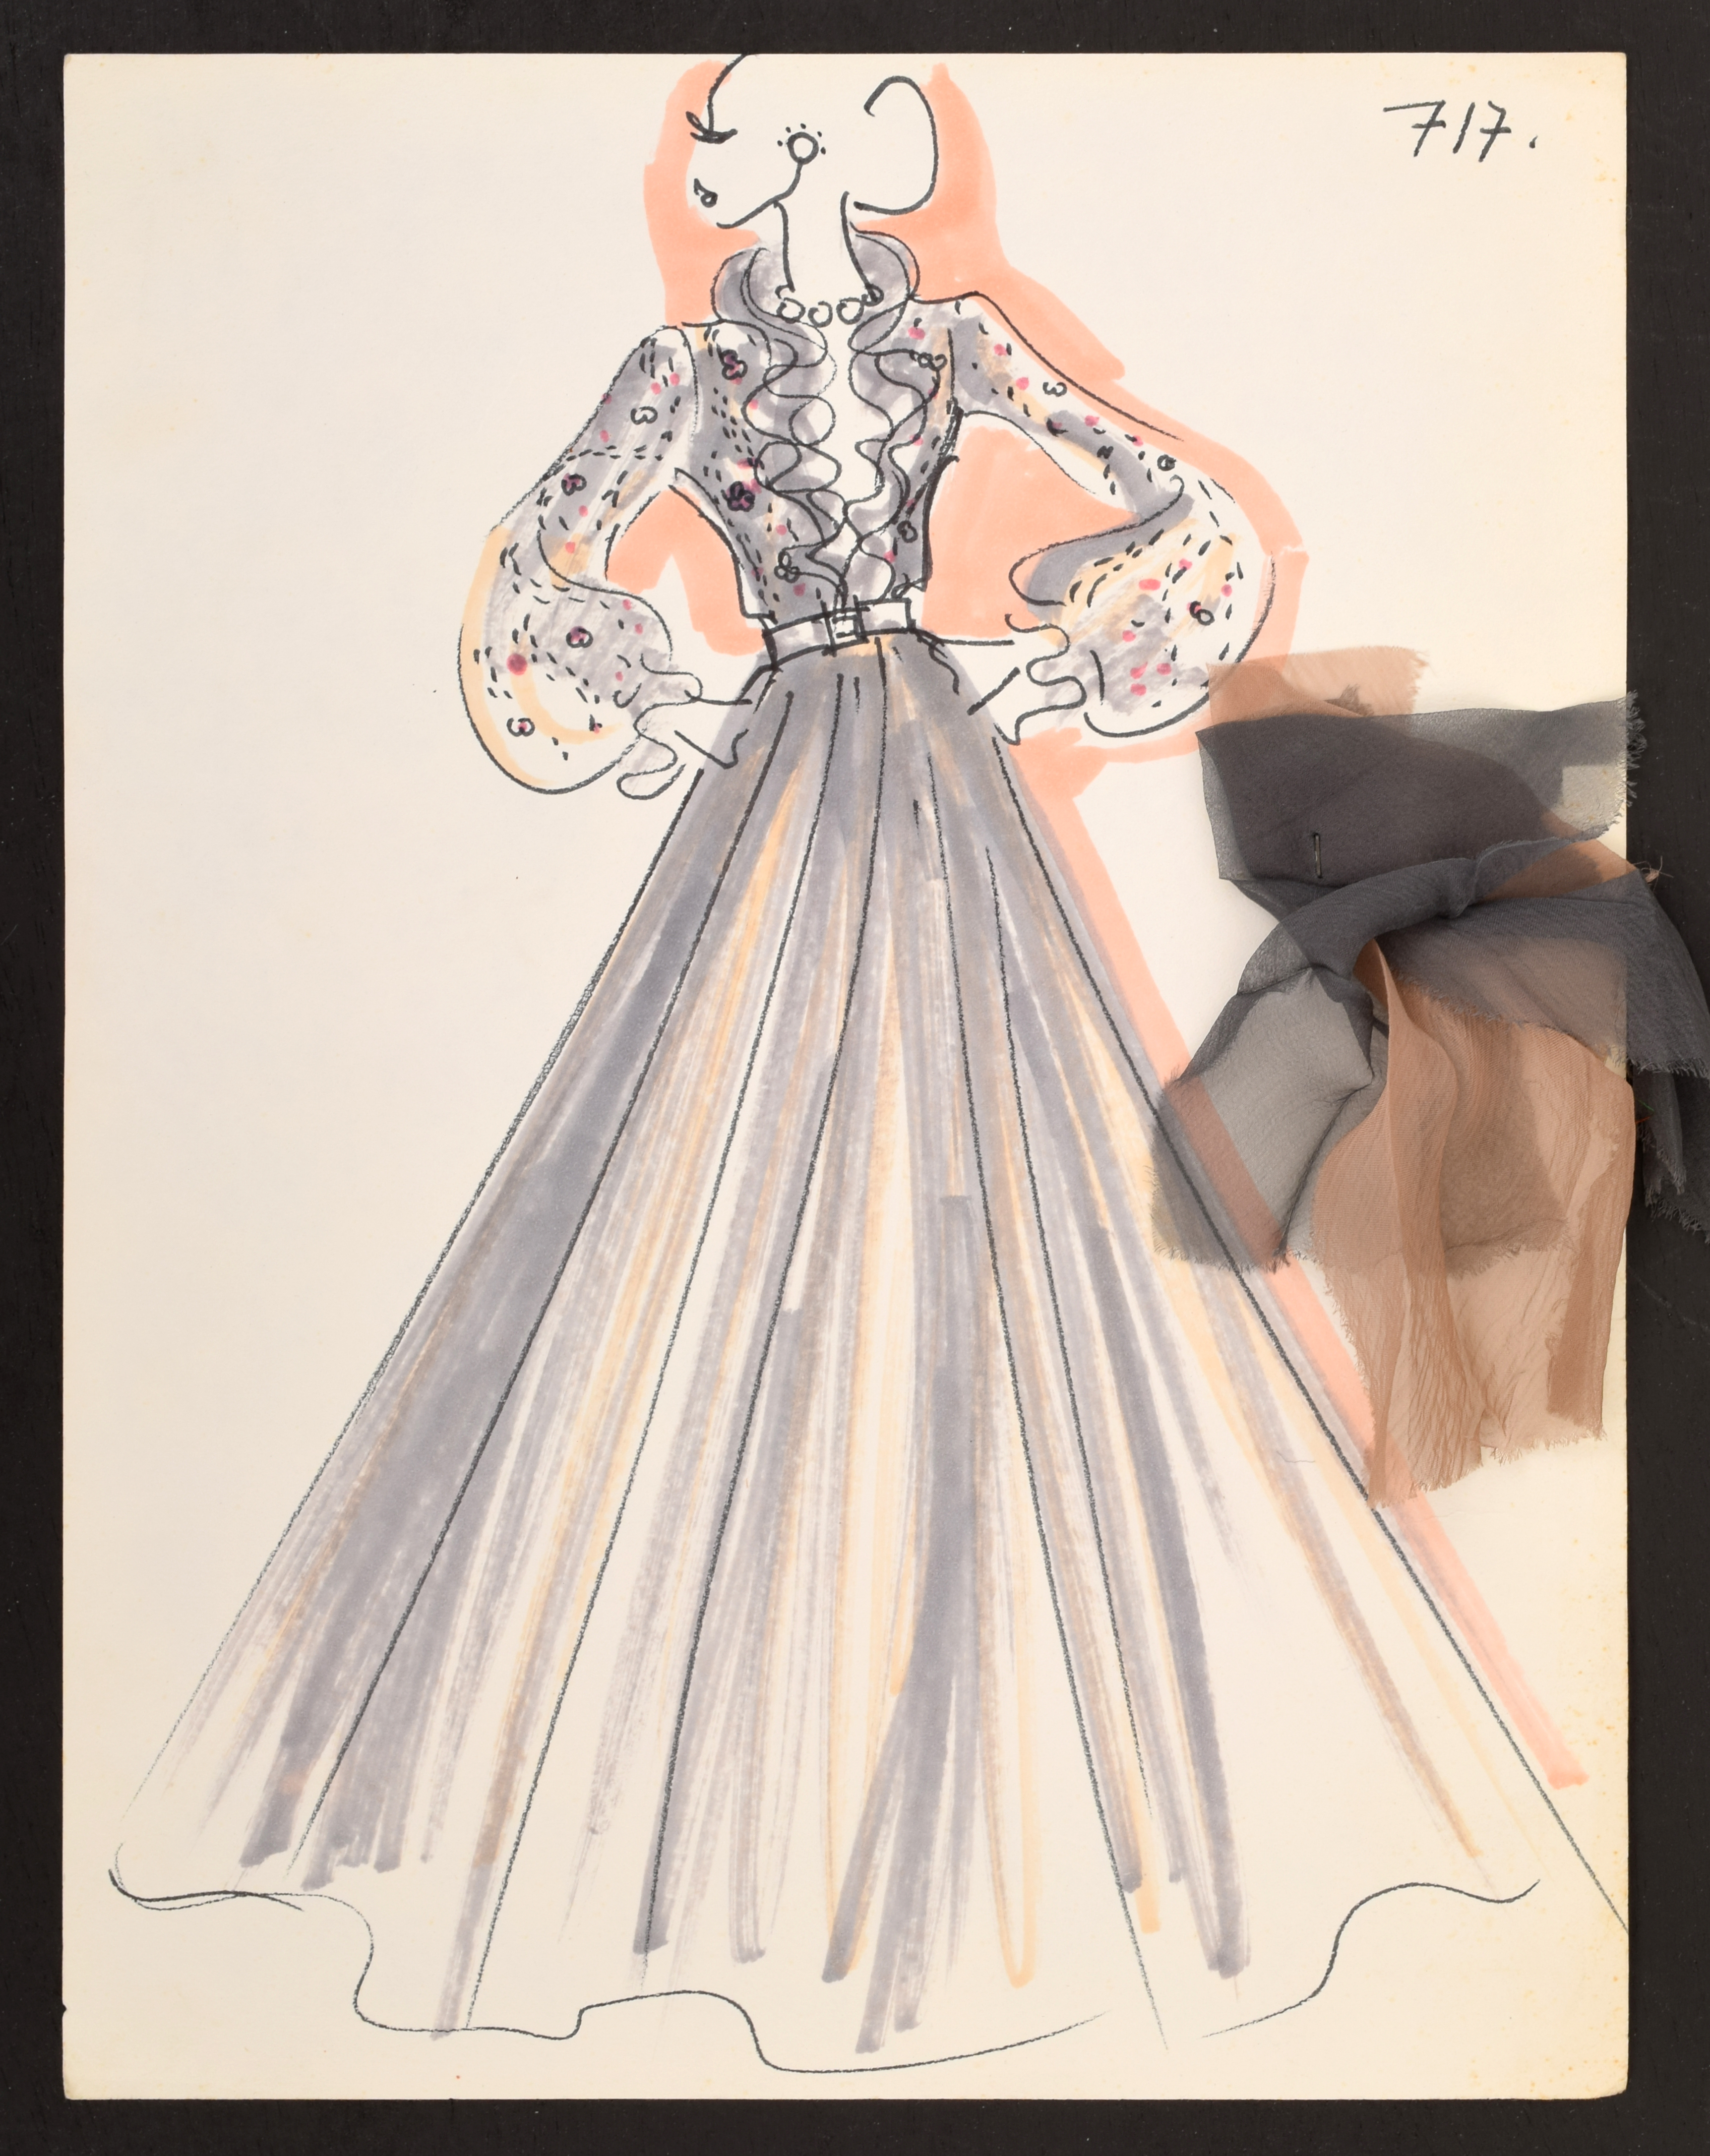 An early Karl Lagerfeld fashion drawing, done in the 1960s for the House of Tiziani. It shows a woman in an evening gown posing with her hands on her hips and looking to the left.